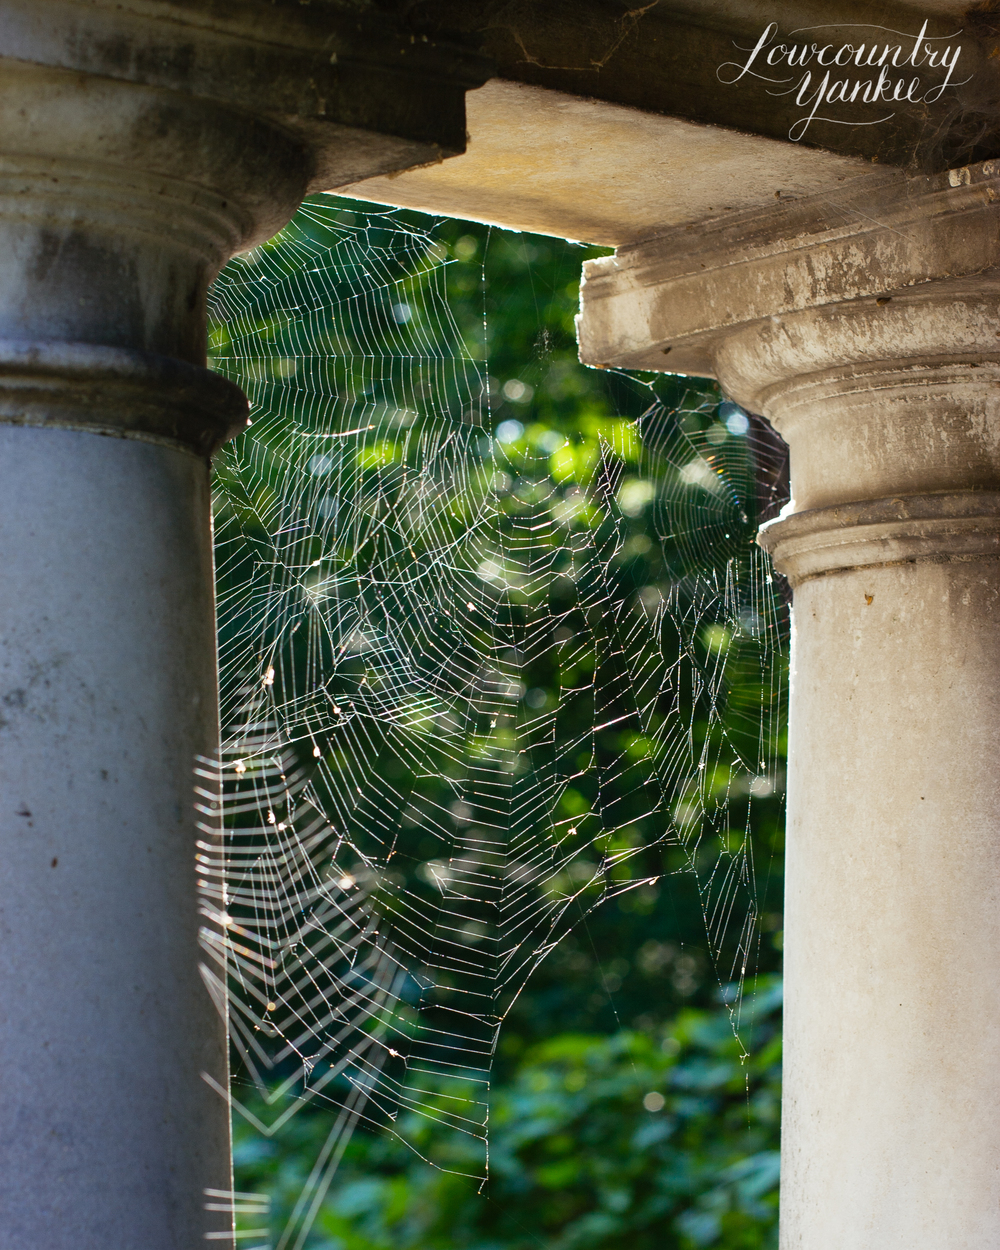 Spiderwebs, Lake Forest Cemetery, IL 2009